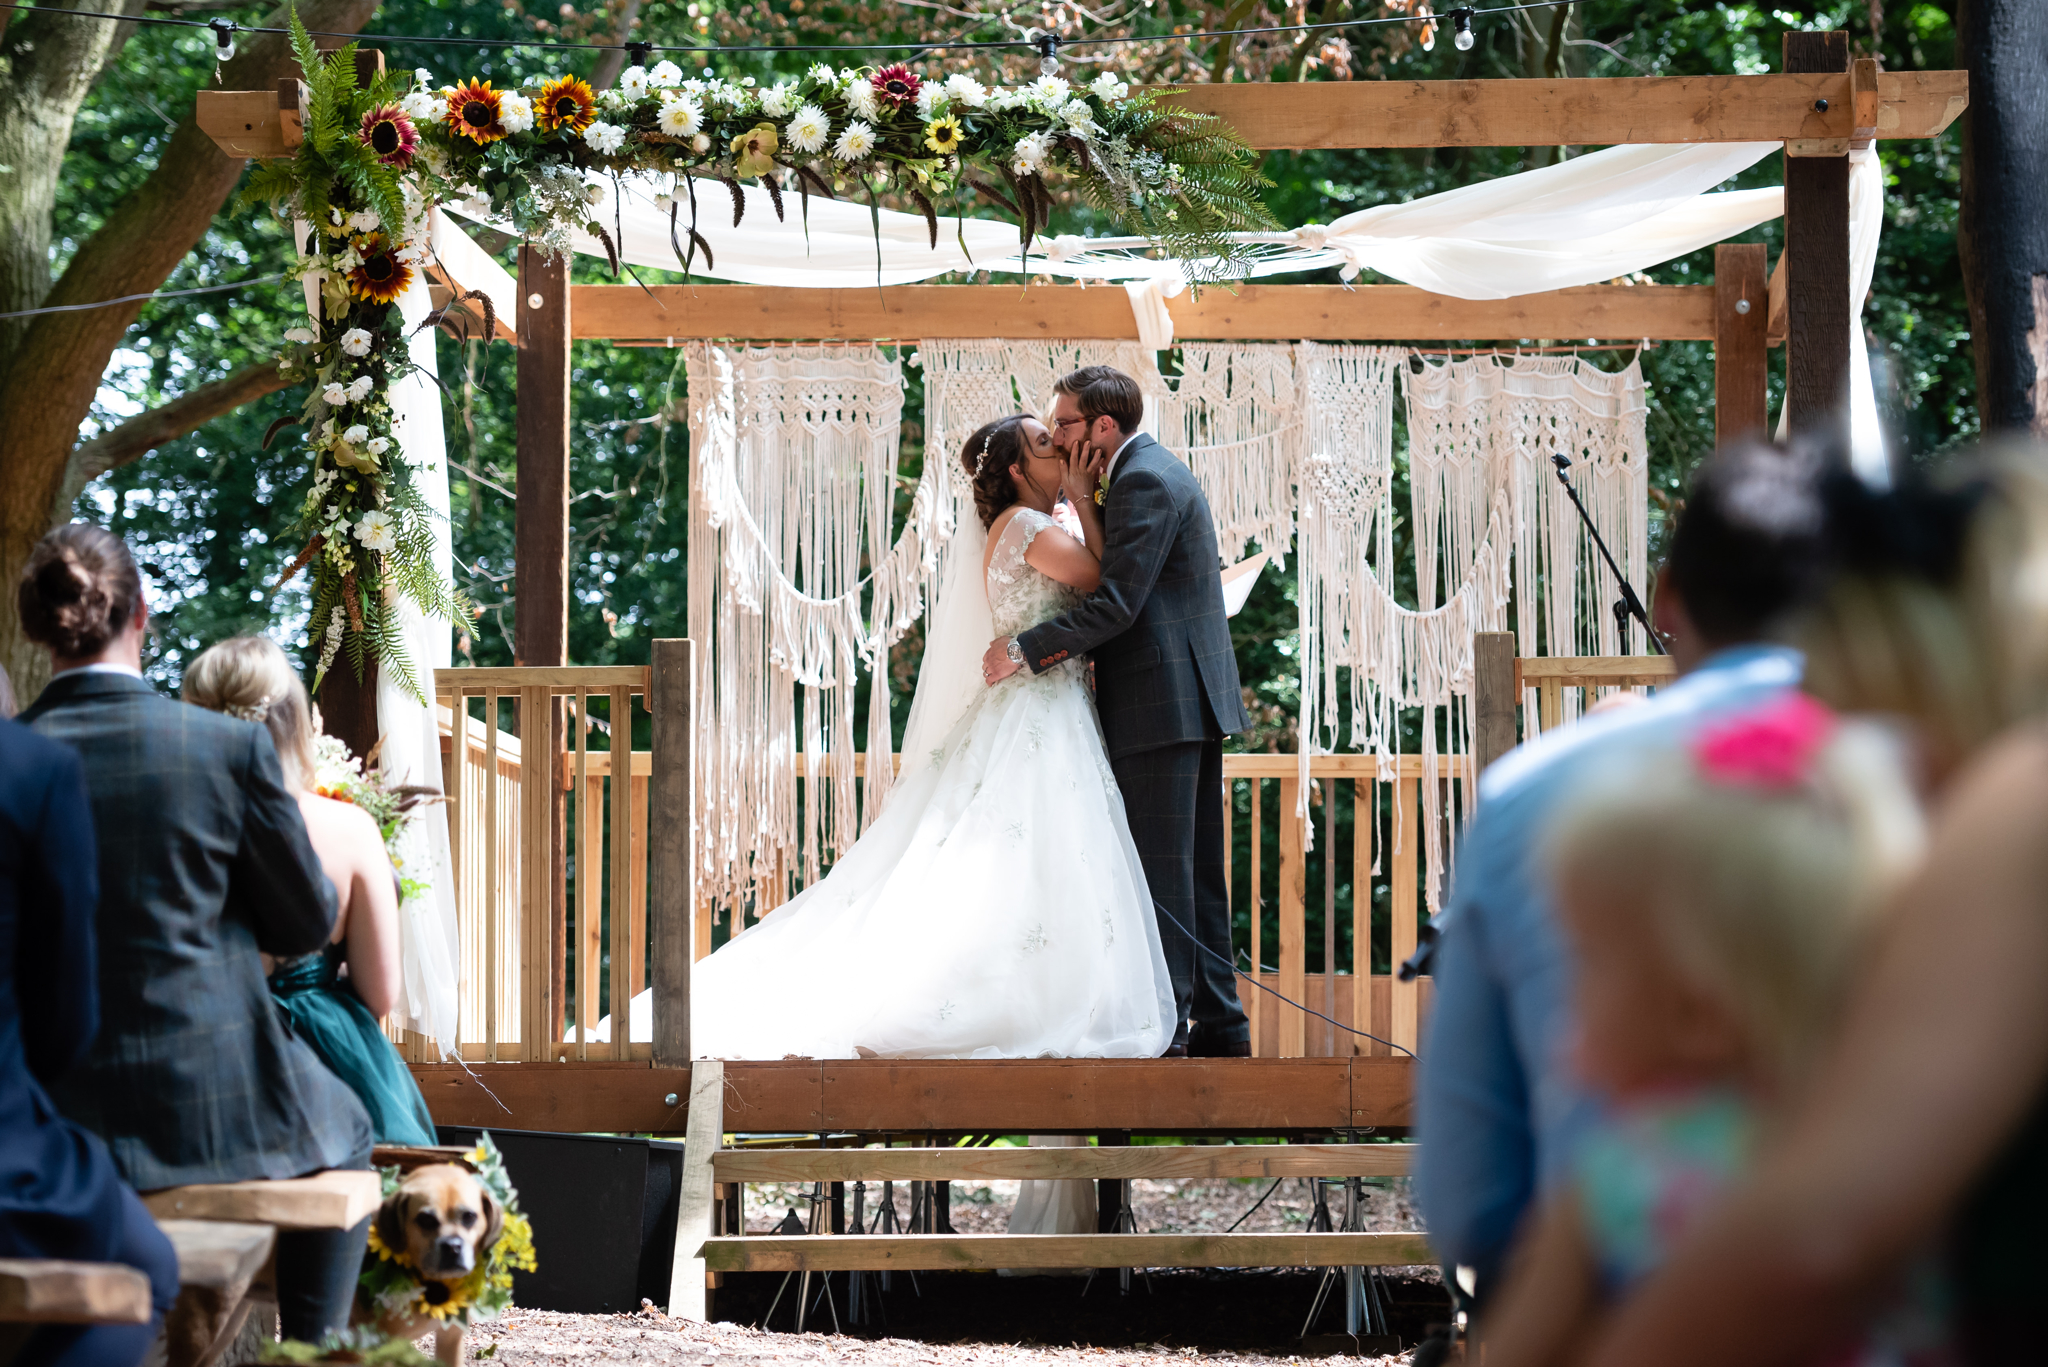 The first kiss at the Woodland wedding